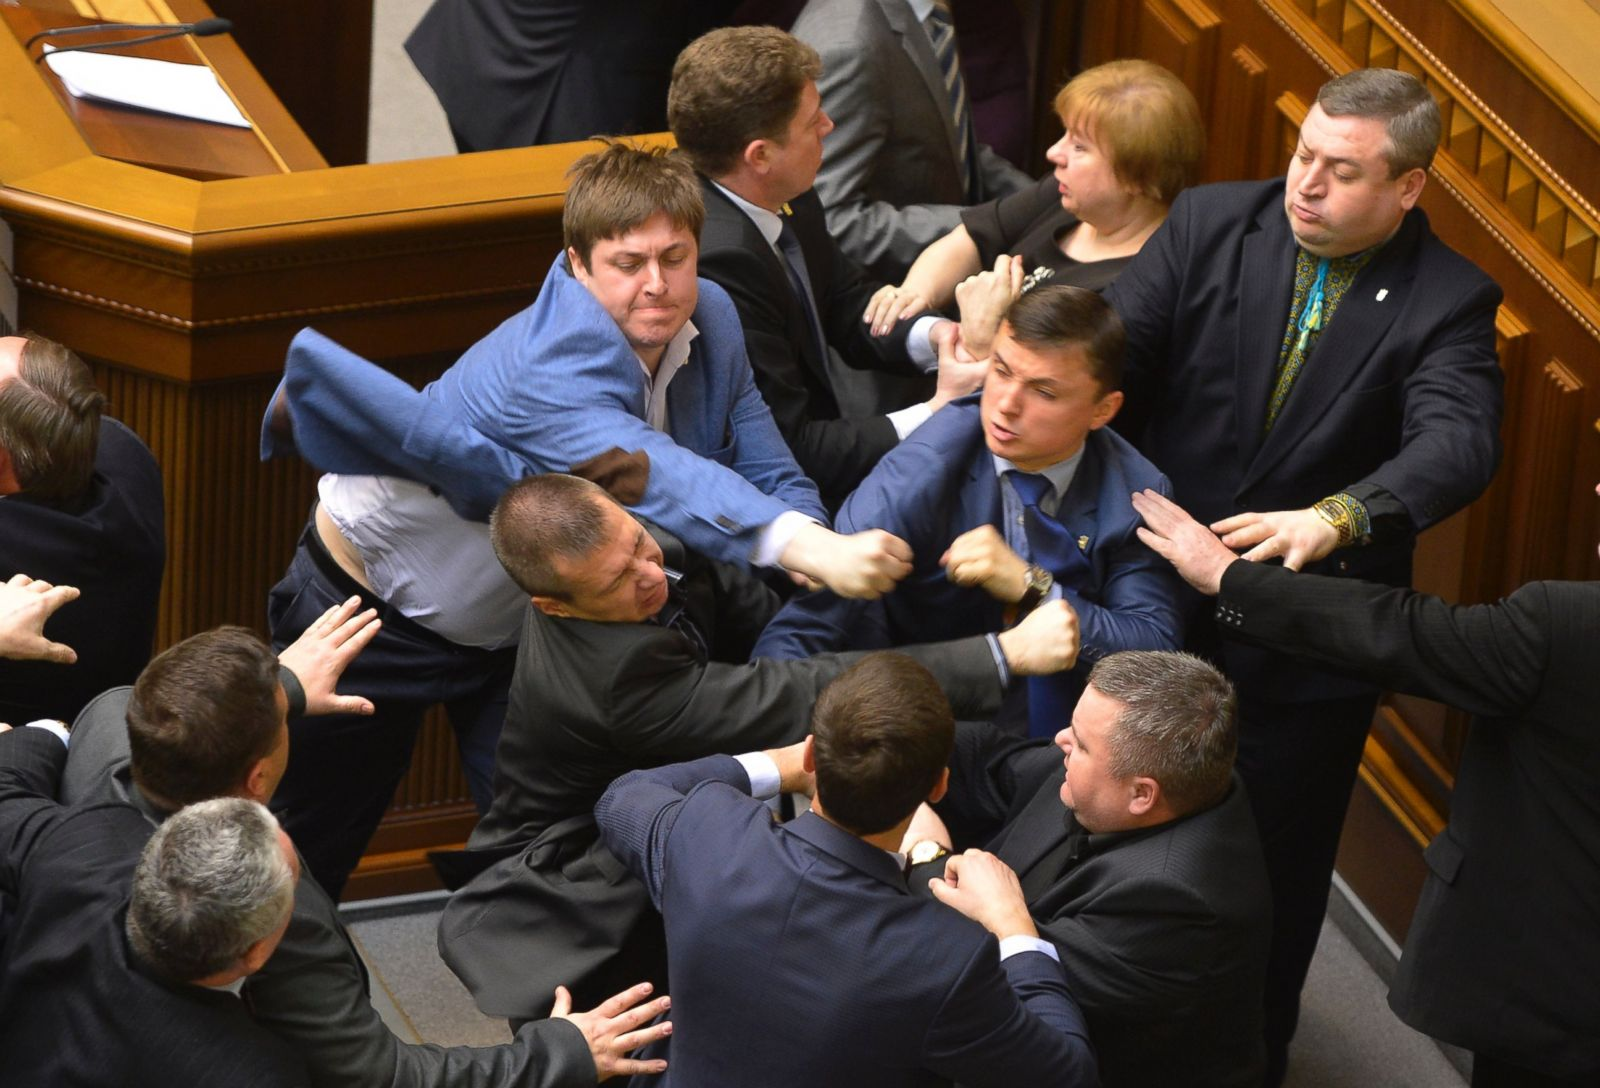 Image result for image of politicians fighting in chamber